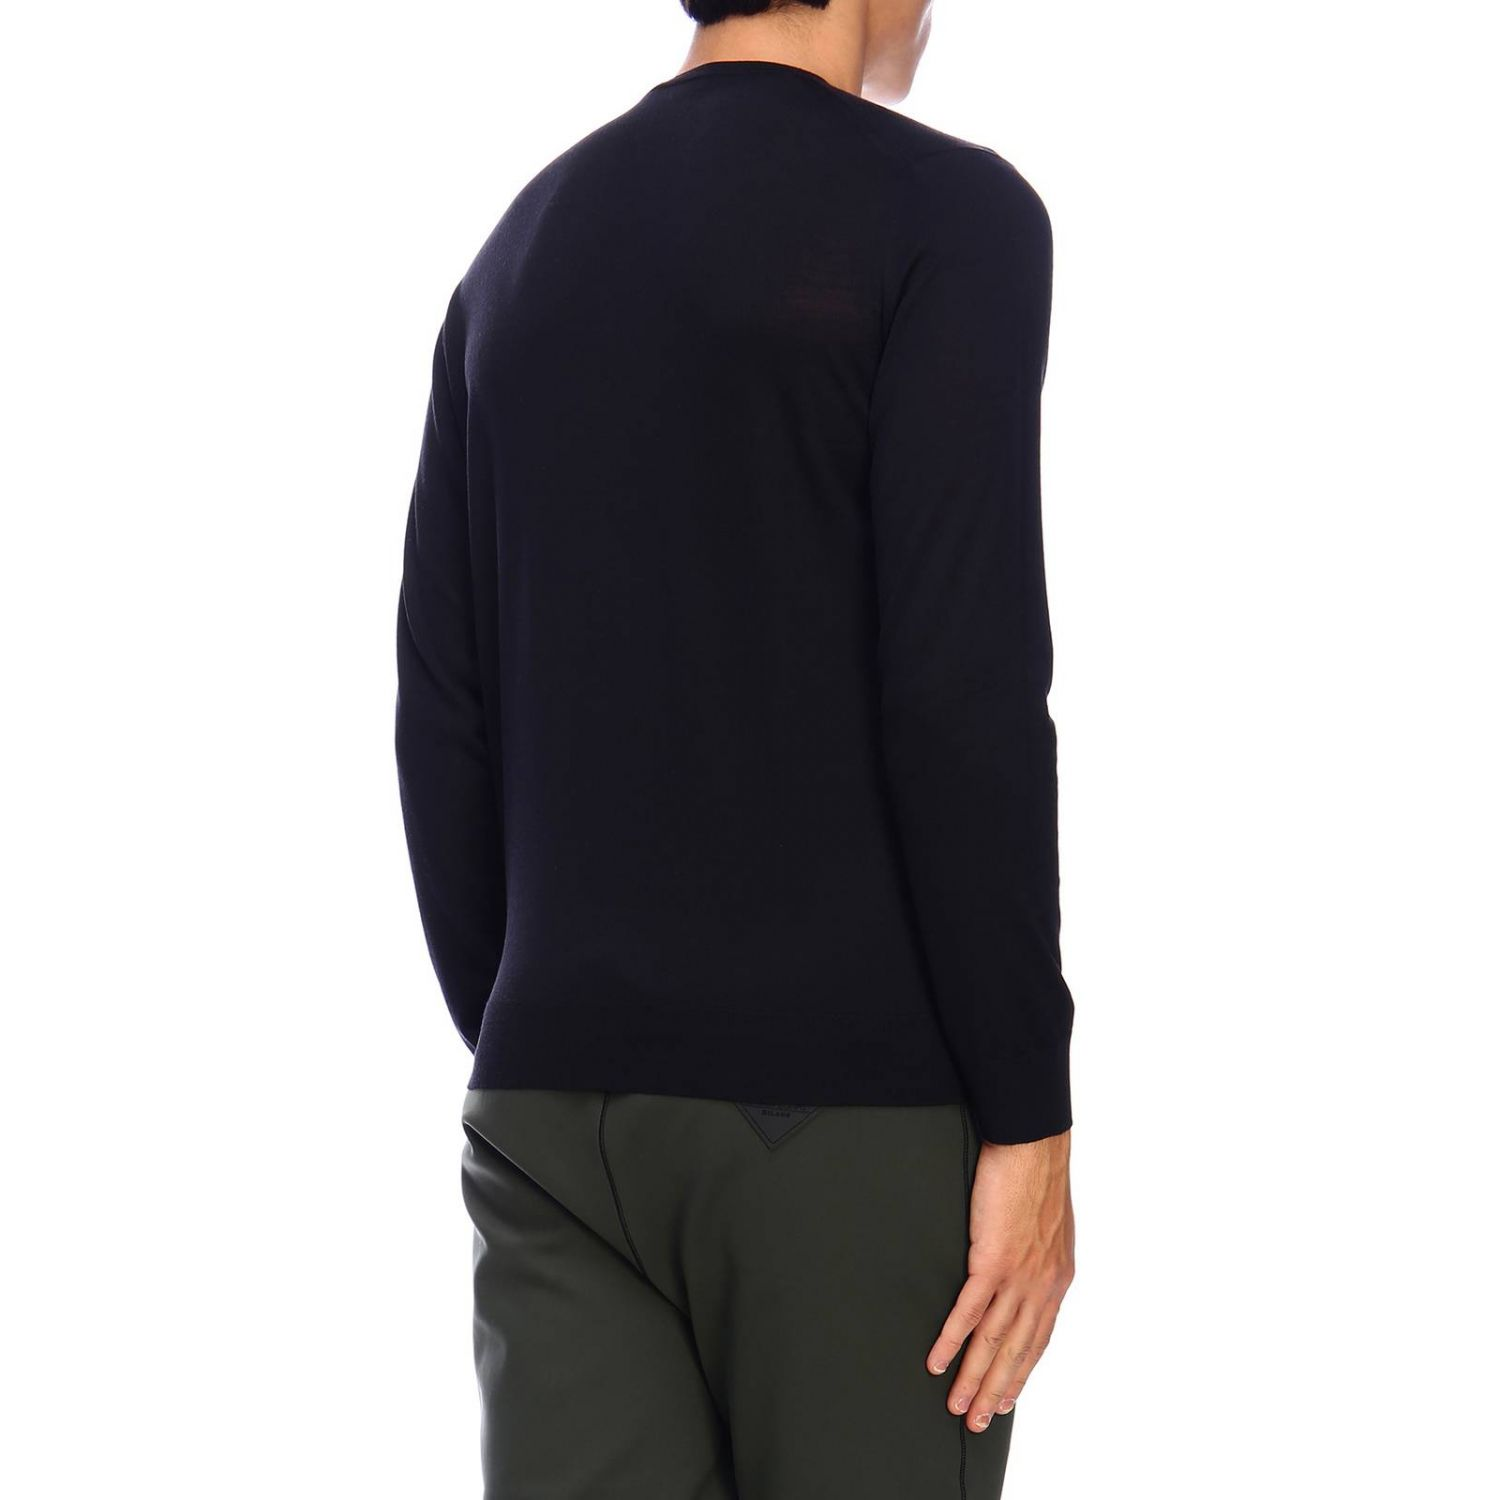 Prada knit sweater in worsted wool with a fineness of 30 black 3